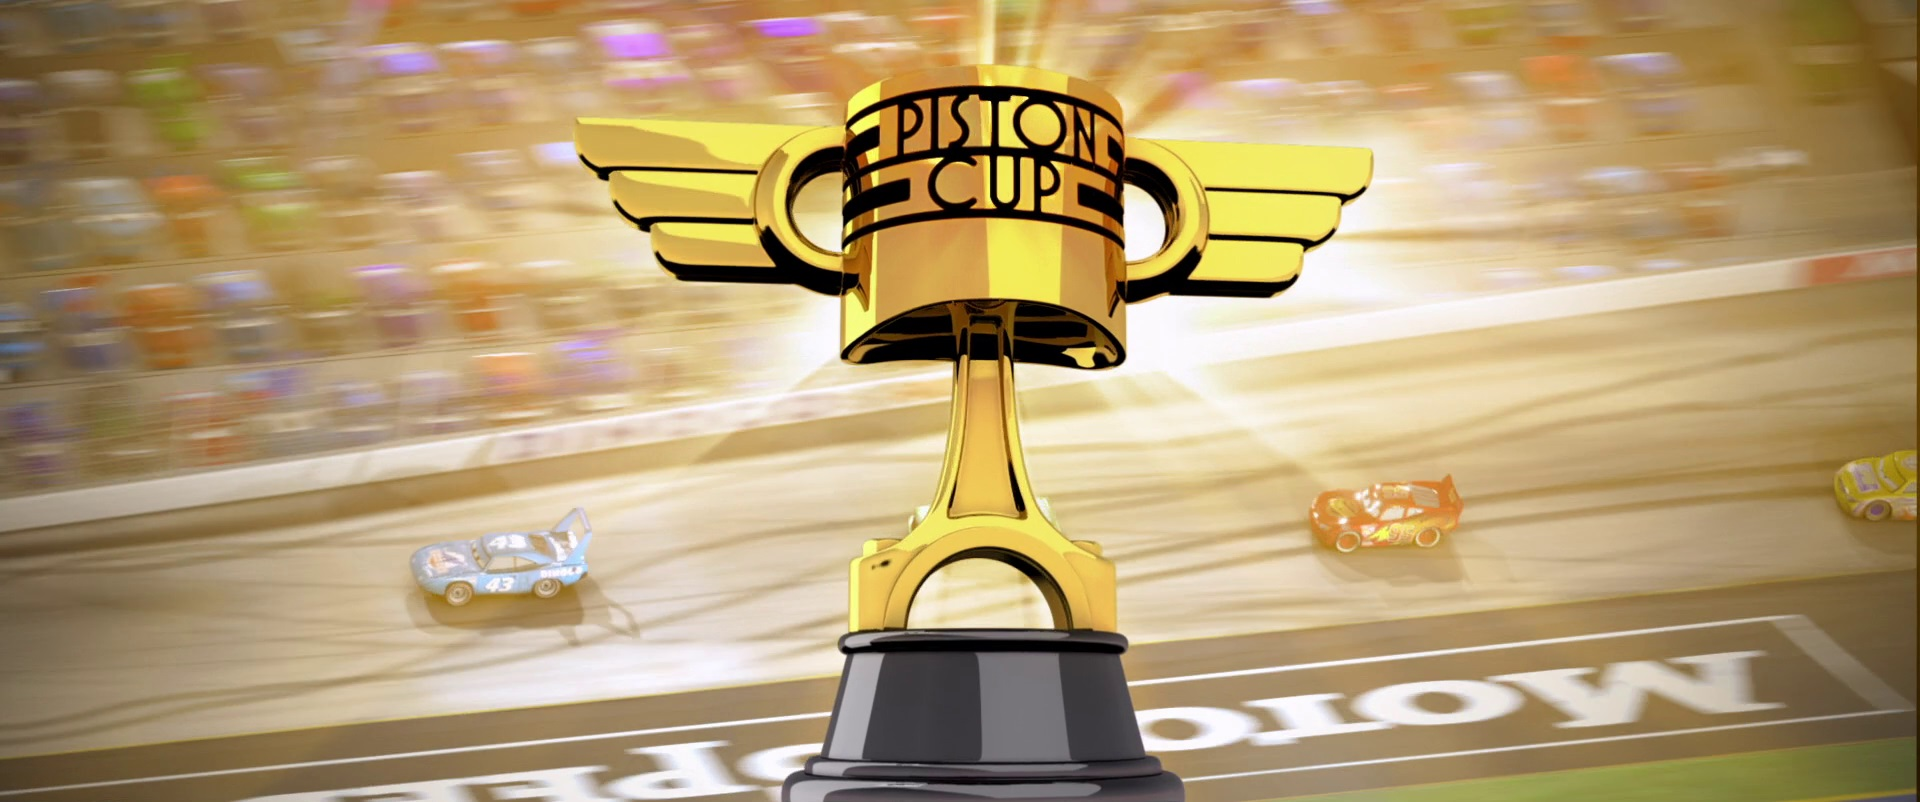 Piston Cup Pixar Cars Wiki Fandom Powered By Wikia